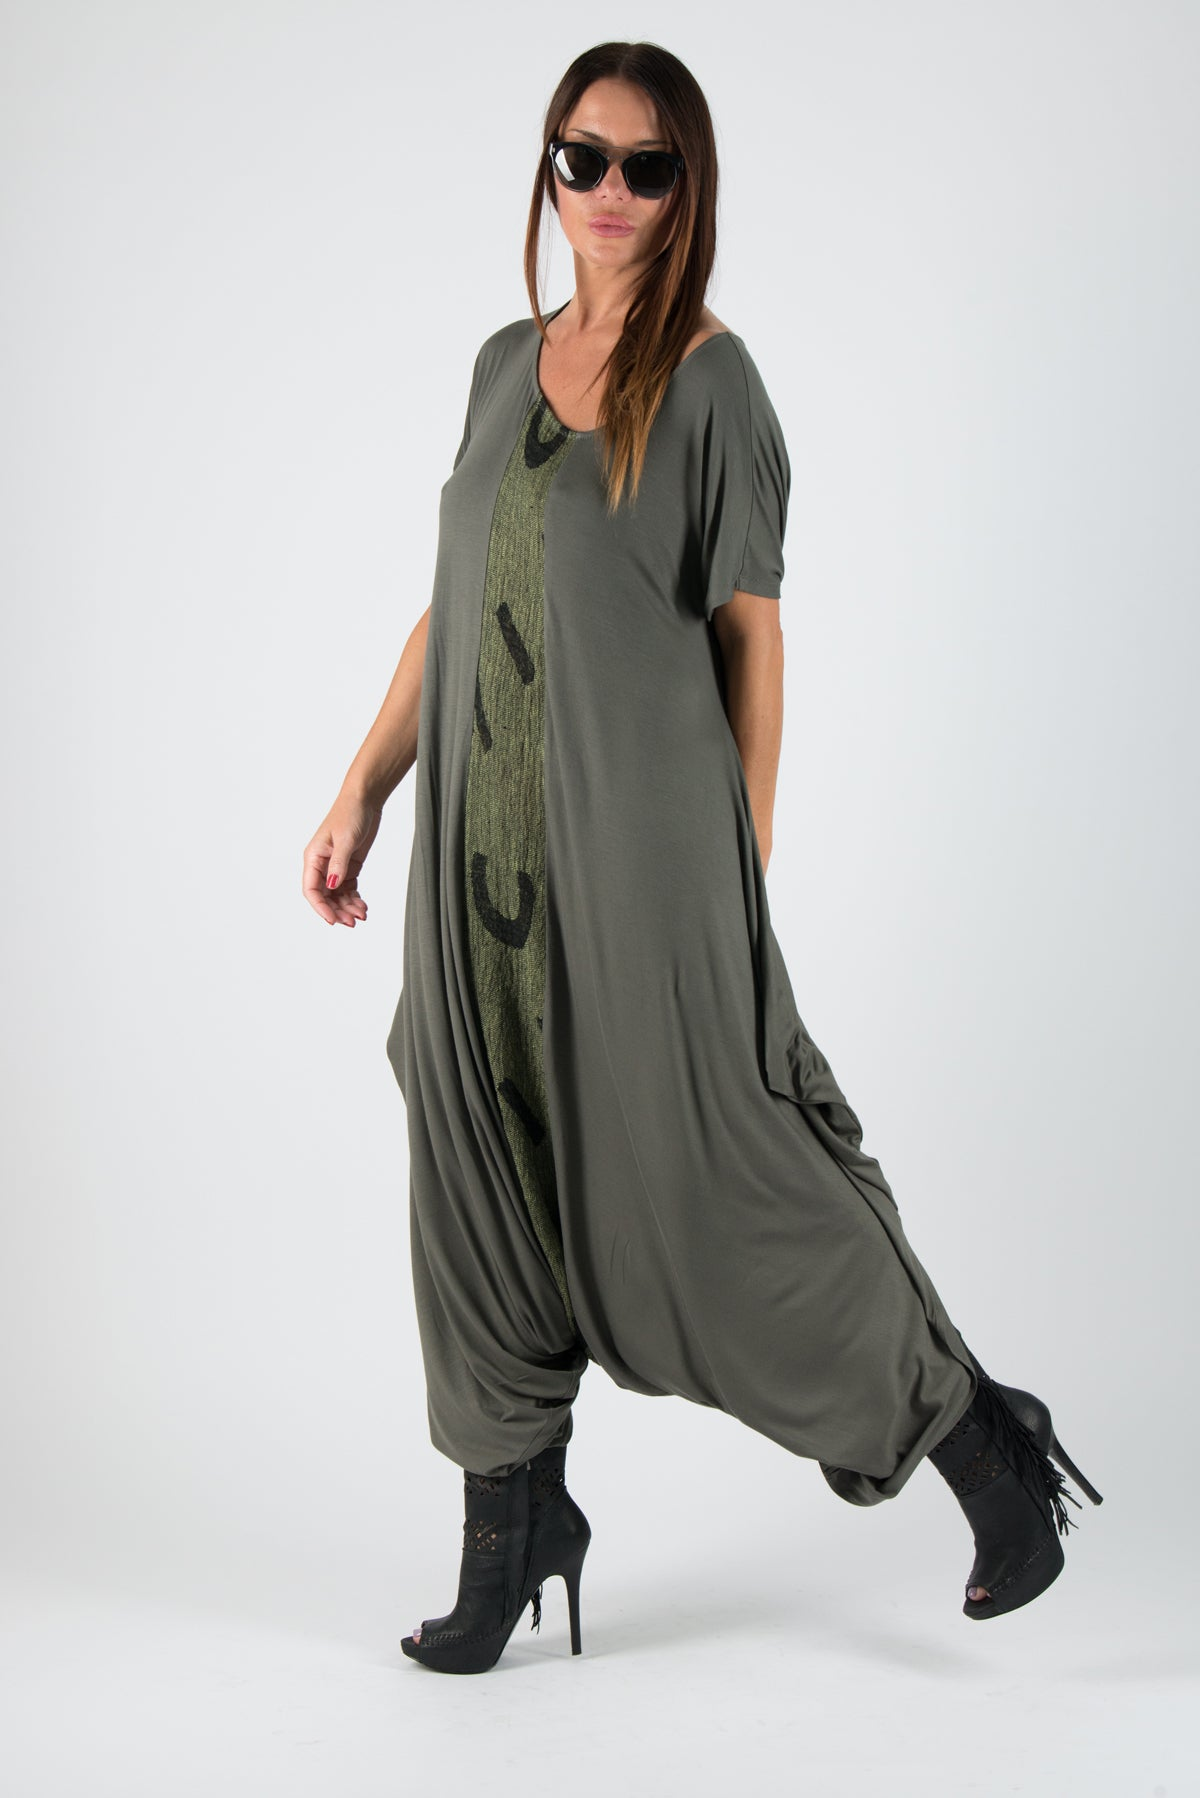 Military Green Women's Jumpsuit, Union suit, Drop Crotch Jumpsuit